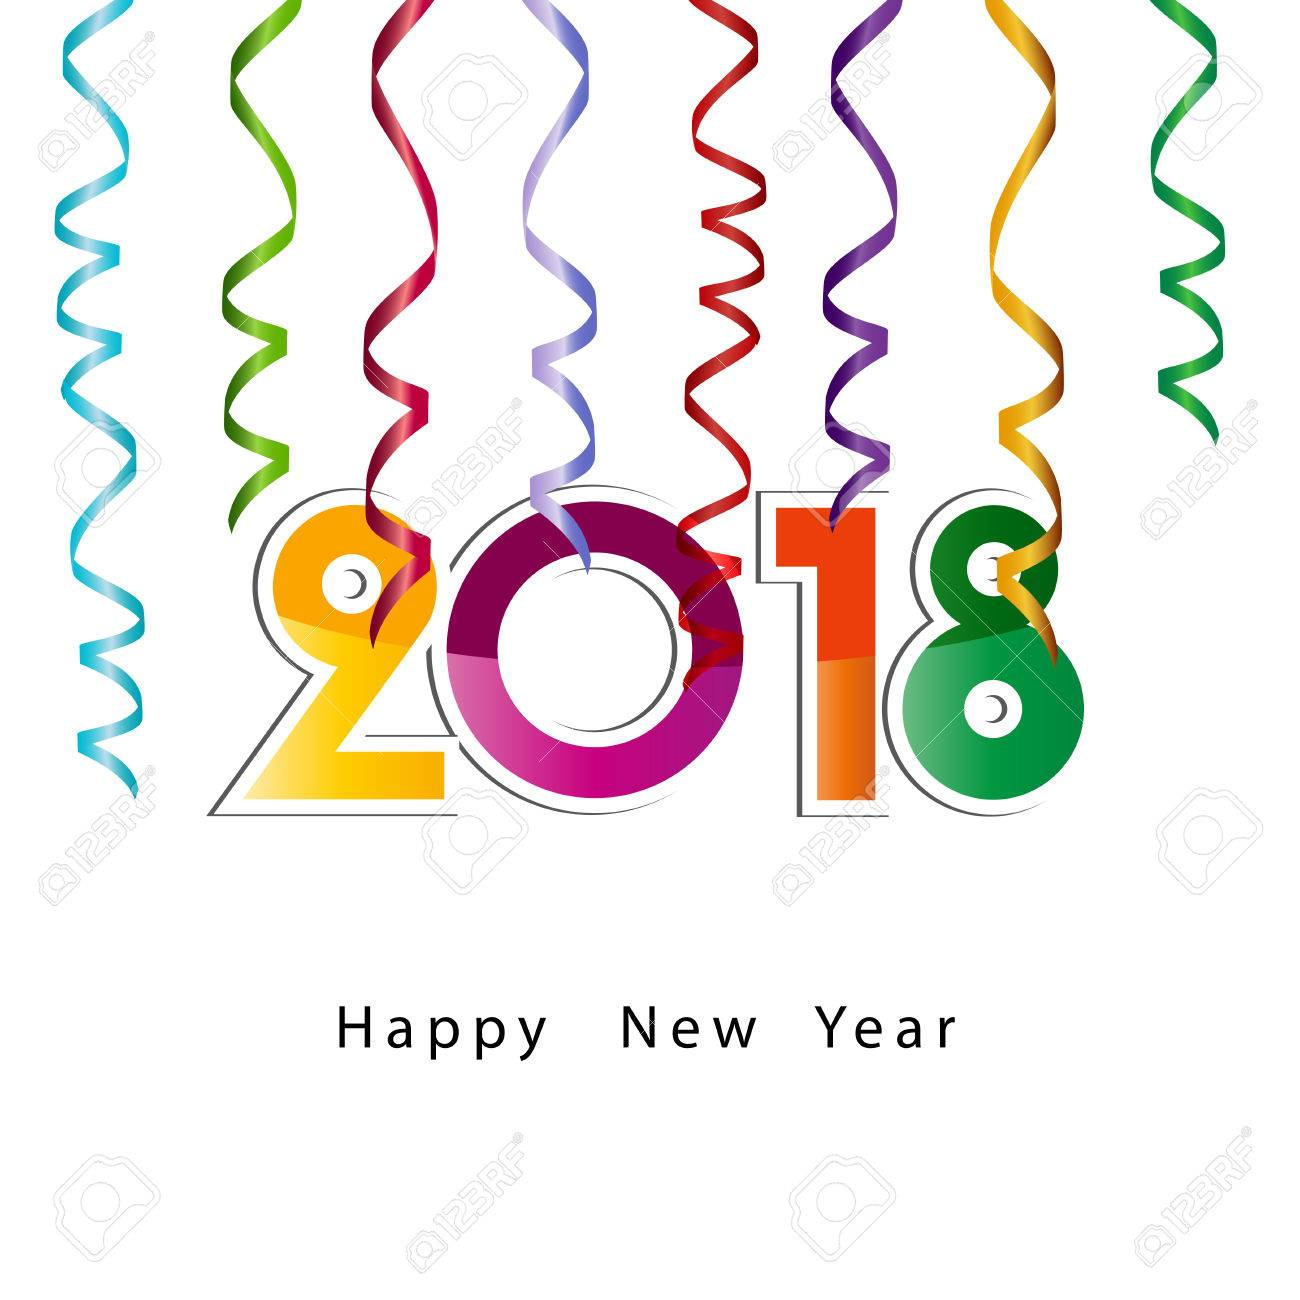 hight resolution of 1300x1300 happy new year 2018 background or element of a holidays card